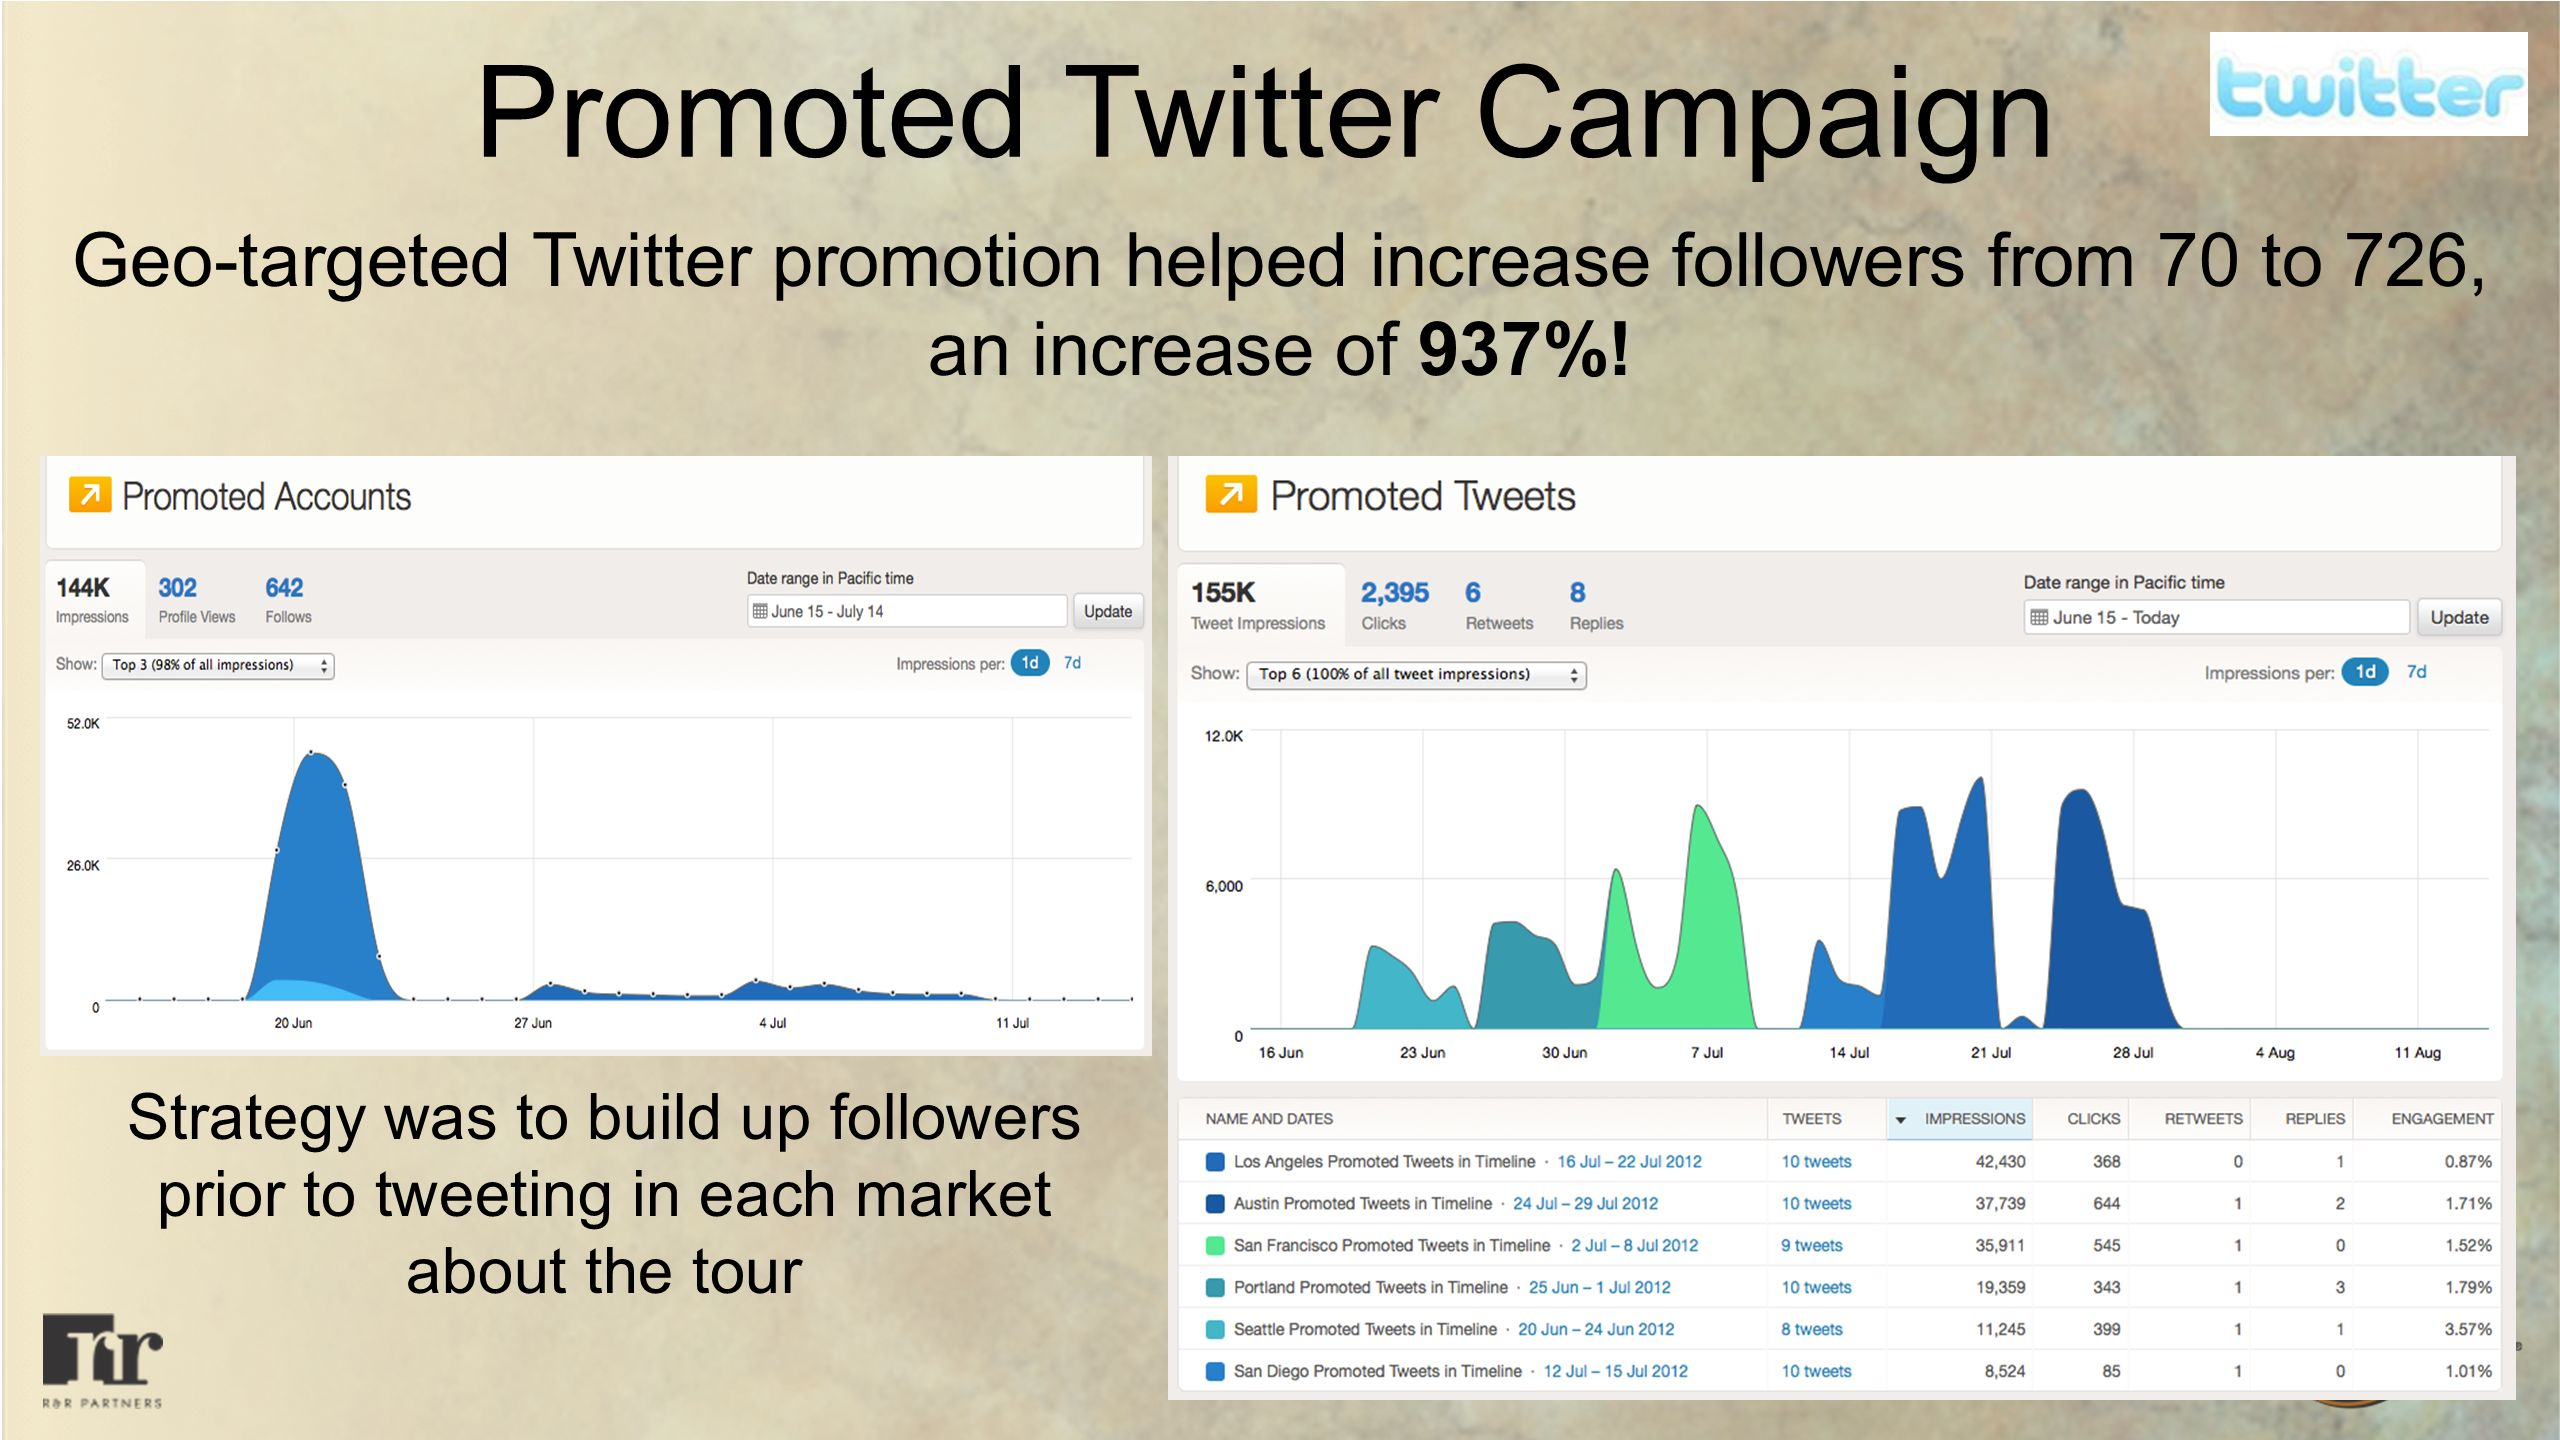 Promoted Twitter Campaign Geo-targeted Twitter promotion helped increase followers from 70 to 726, an increase of 937%.